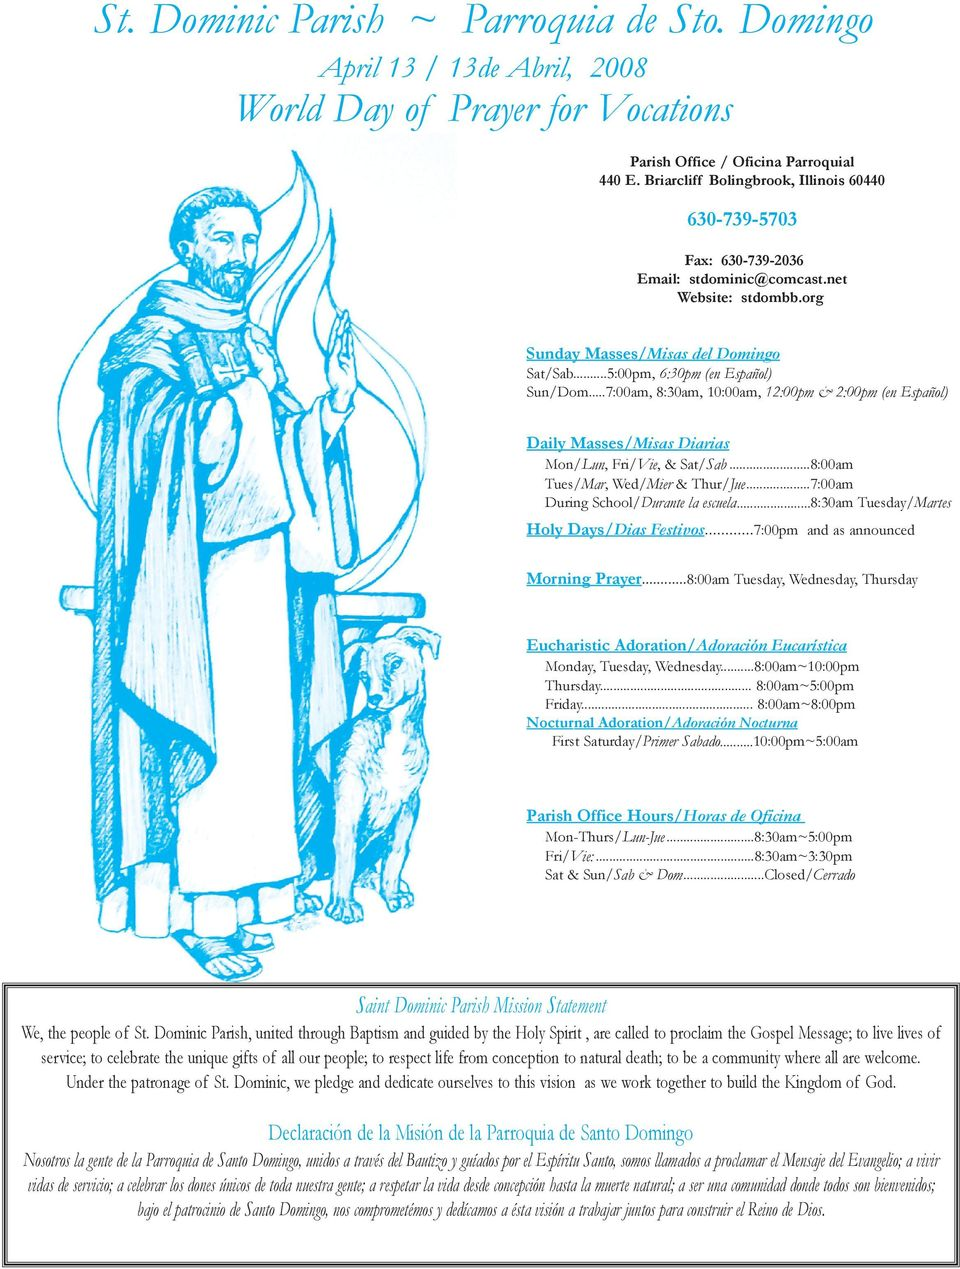 ..7:00am, 8:30am, 10:00am, 12:00pm & 2:00pm (en Español) Daily Masses/Misas Diarias Mon/Lun, Fri/Vie, & Sat/Sab...8:00am Tues/Mar, Wed/Mier & Thur/Jue...7:00am During School/Durante la escuela.